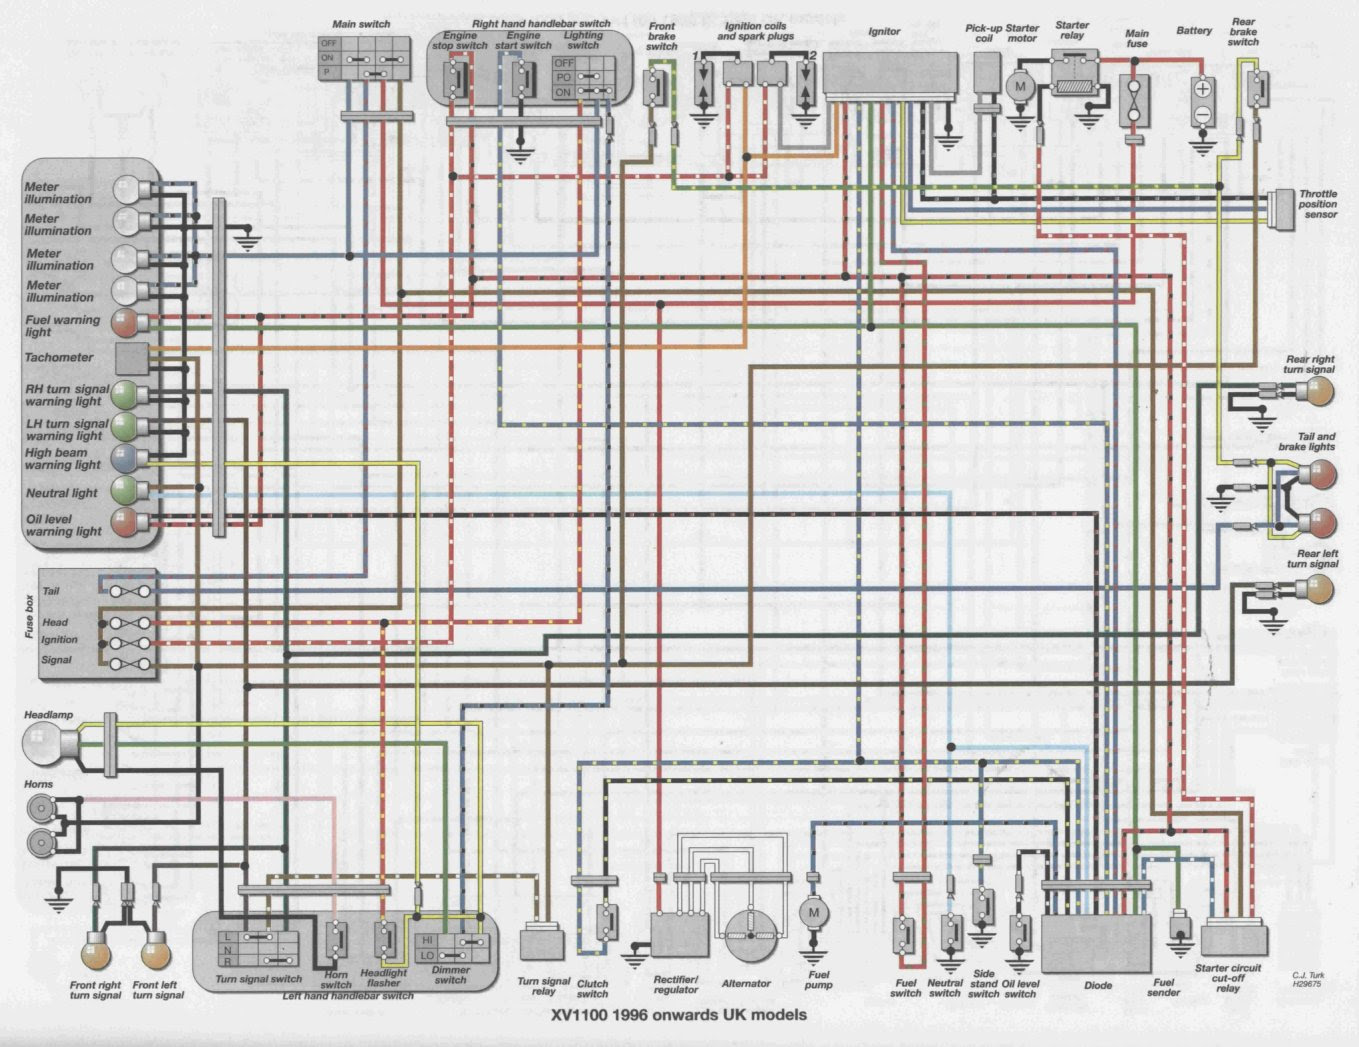 Diagram 1987 1100 Virago Wiring Diagram Full Version Hd Quality Wiring Diagram Mtswiring Prolocomontefano It